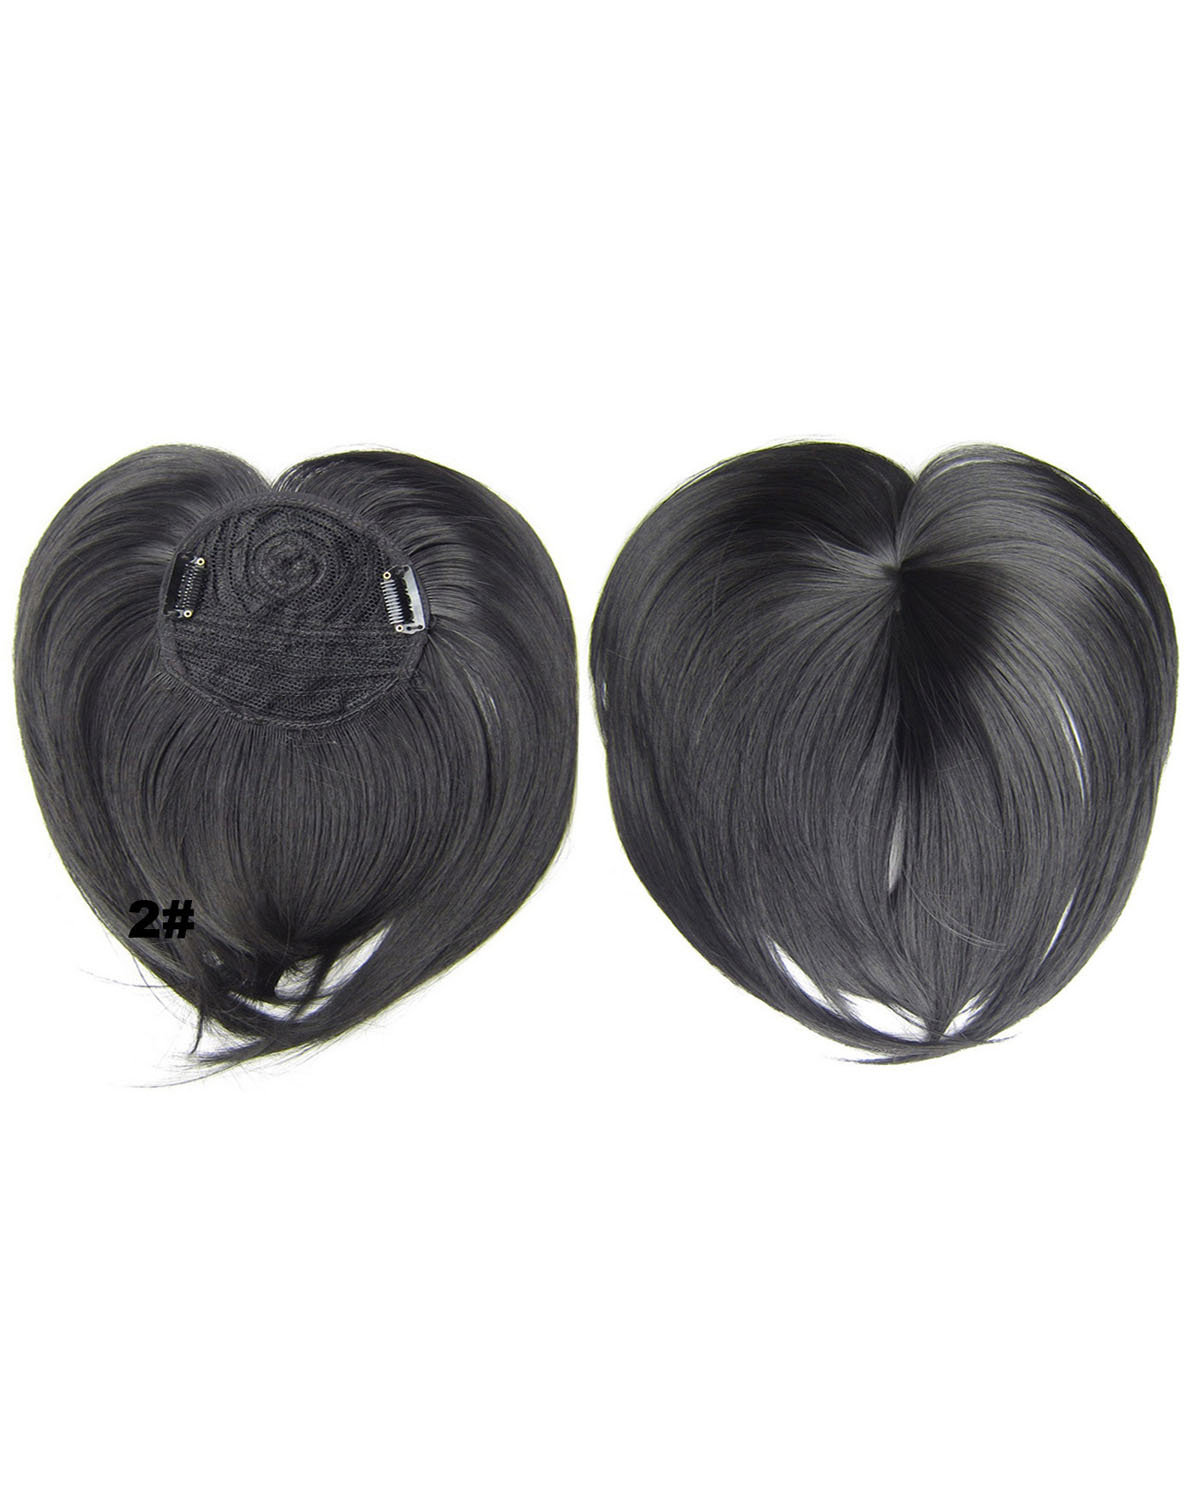 Girls Good Quality Straight Short Bangs Clip in Synthetic Hair Extension Fringe Bangs Hairpiece2#